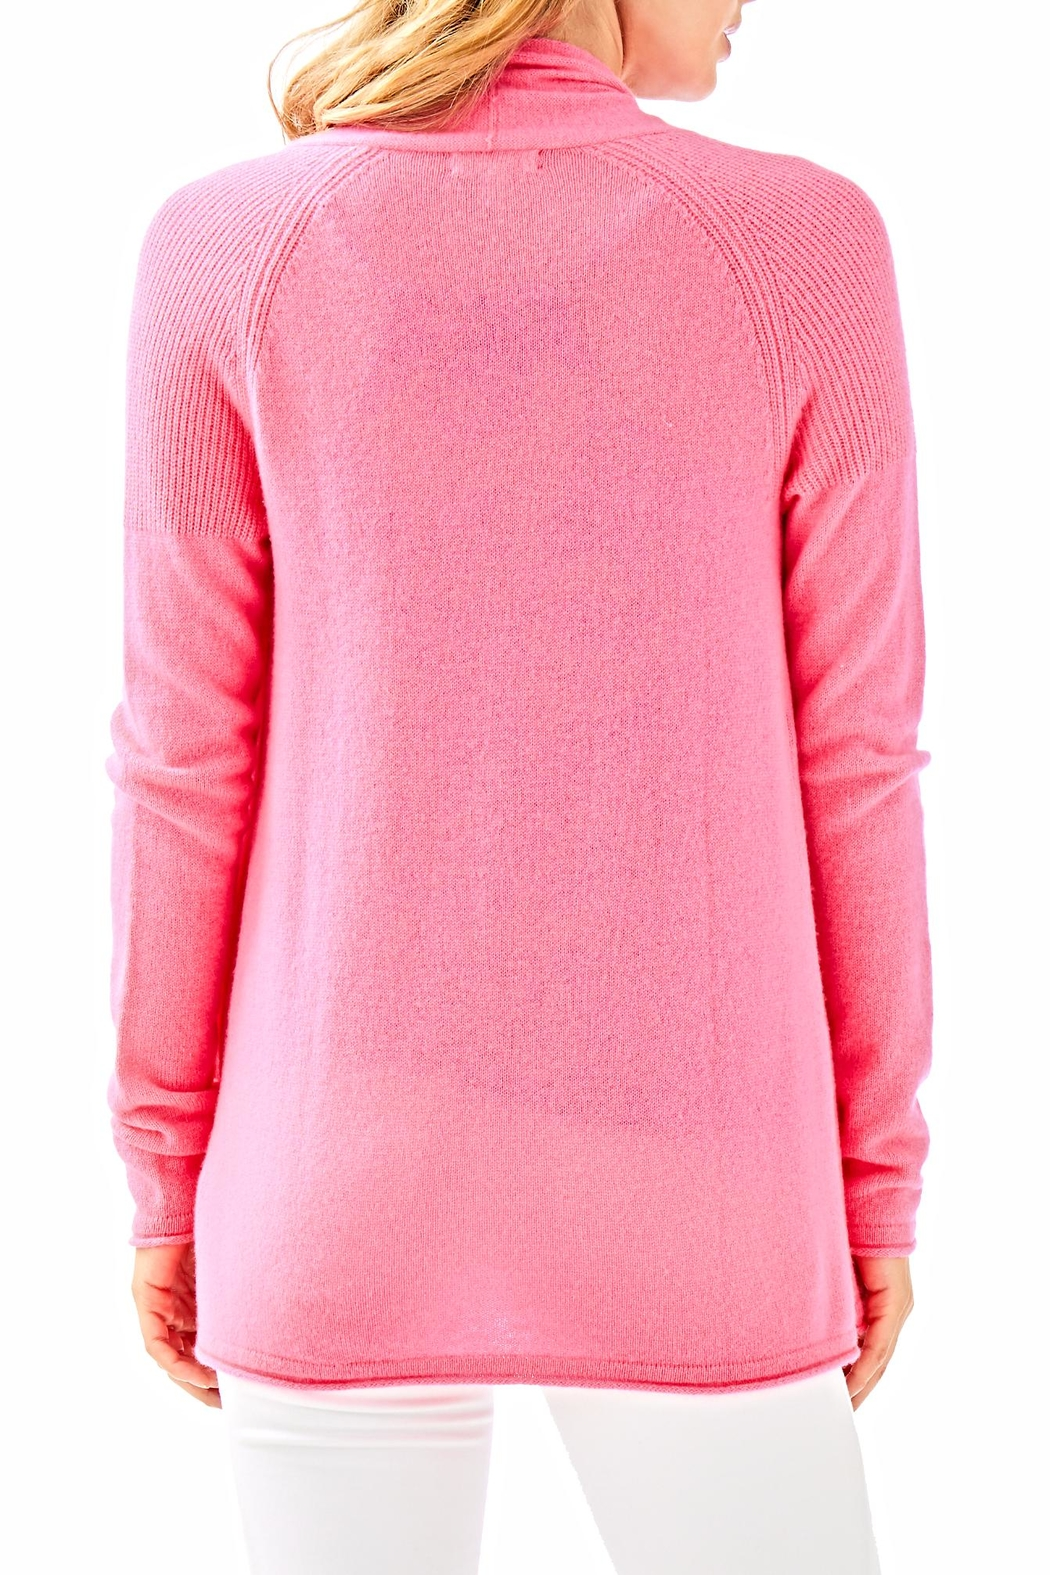 Lilly Pulitzer Seabrook Cashmere Cardigan - Front Full Image